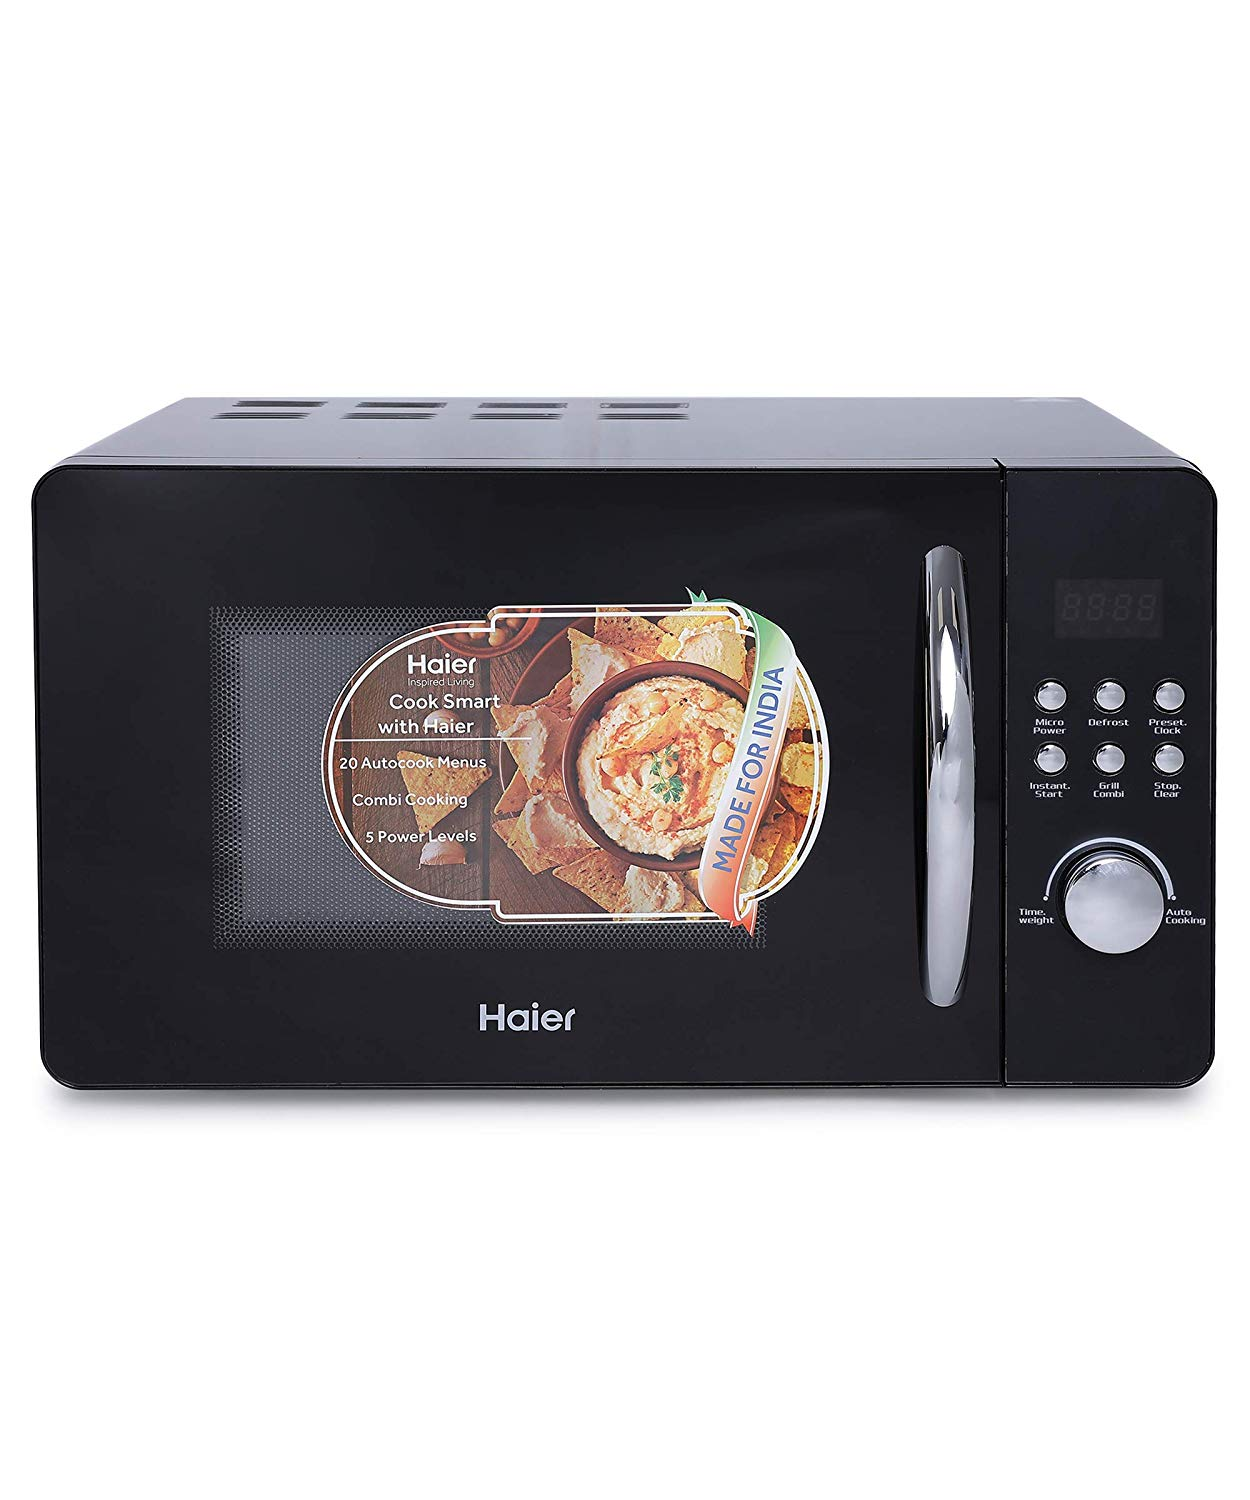 Haier 20 L Grill Microwave Oven